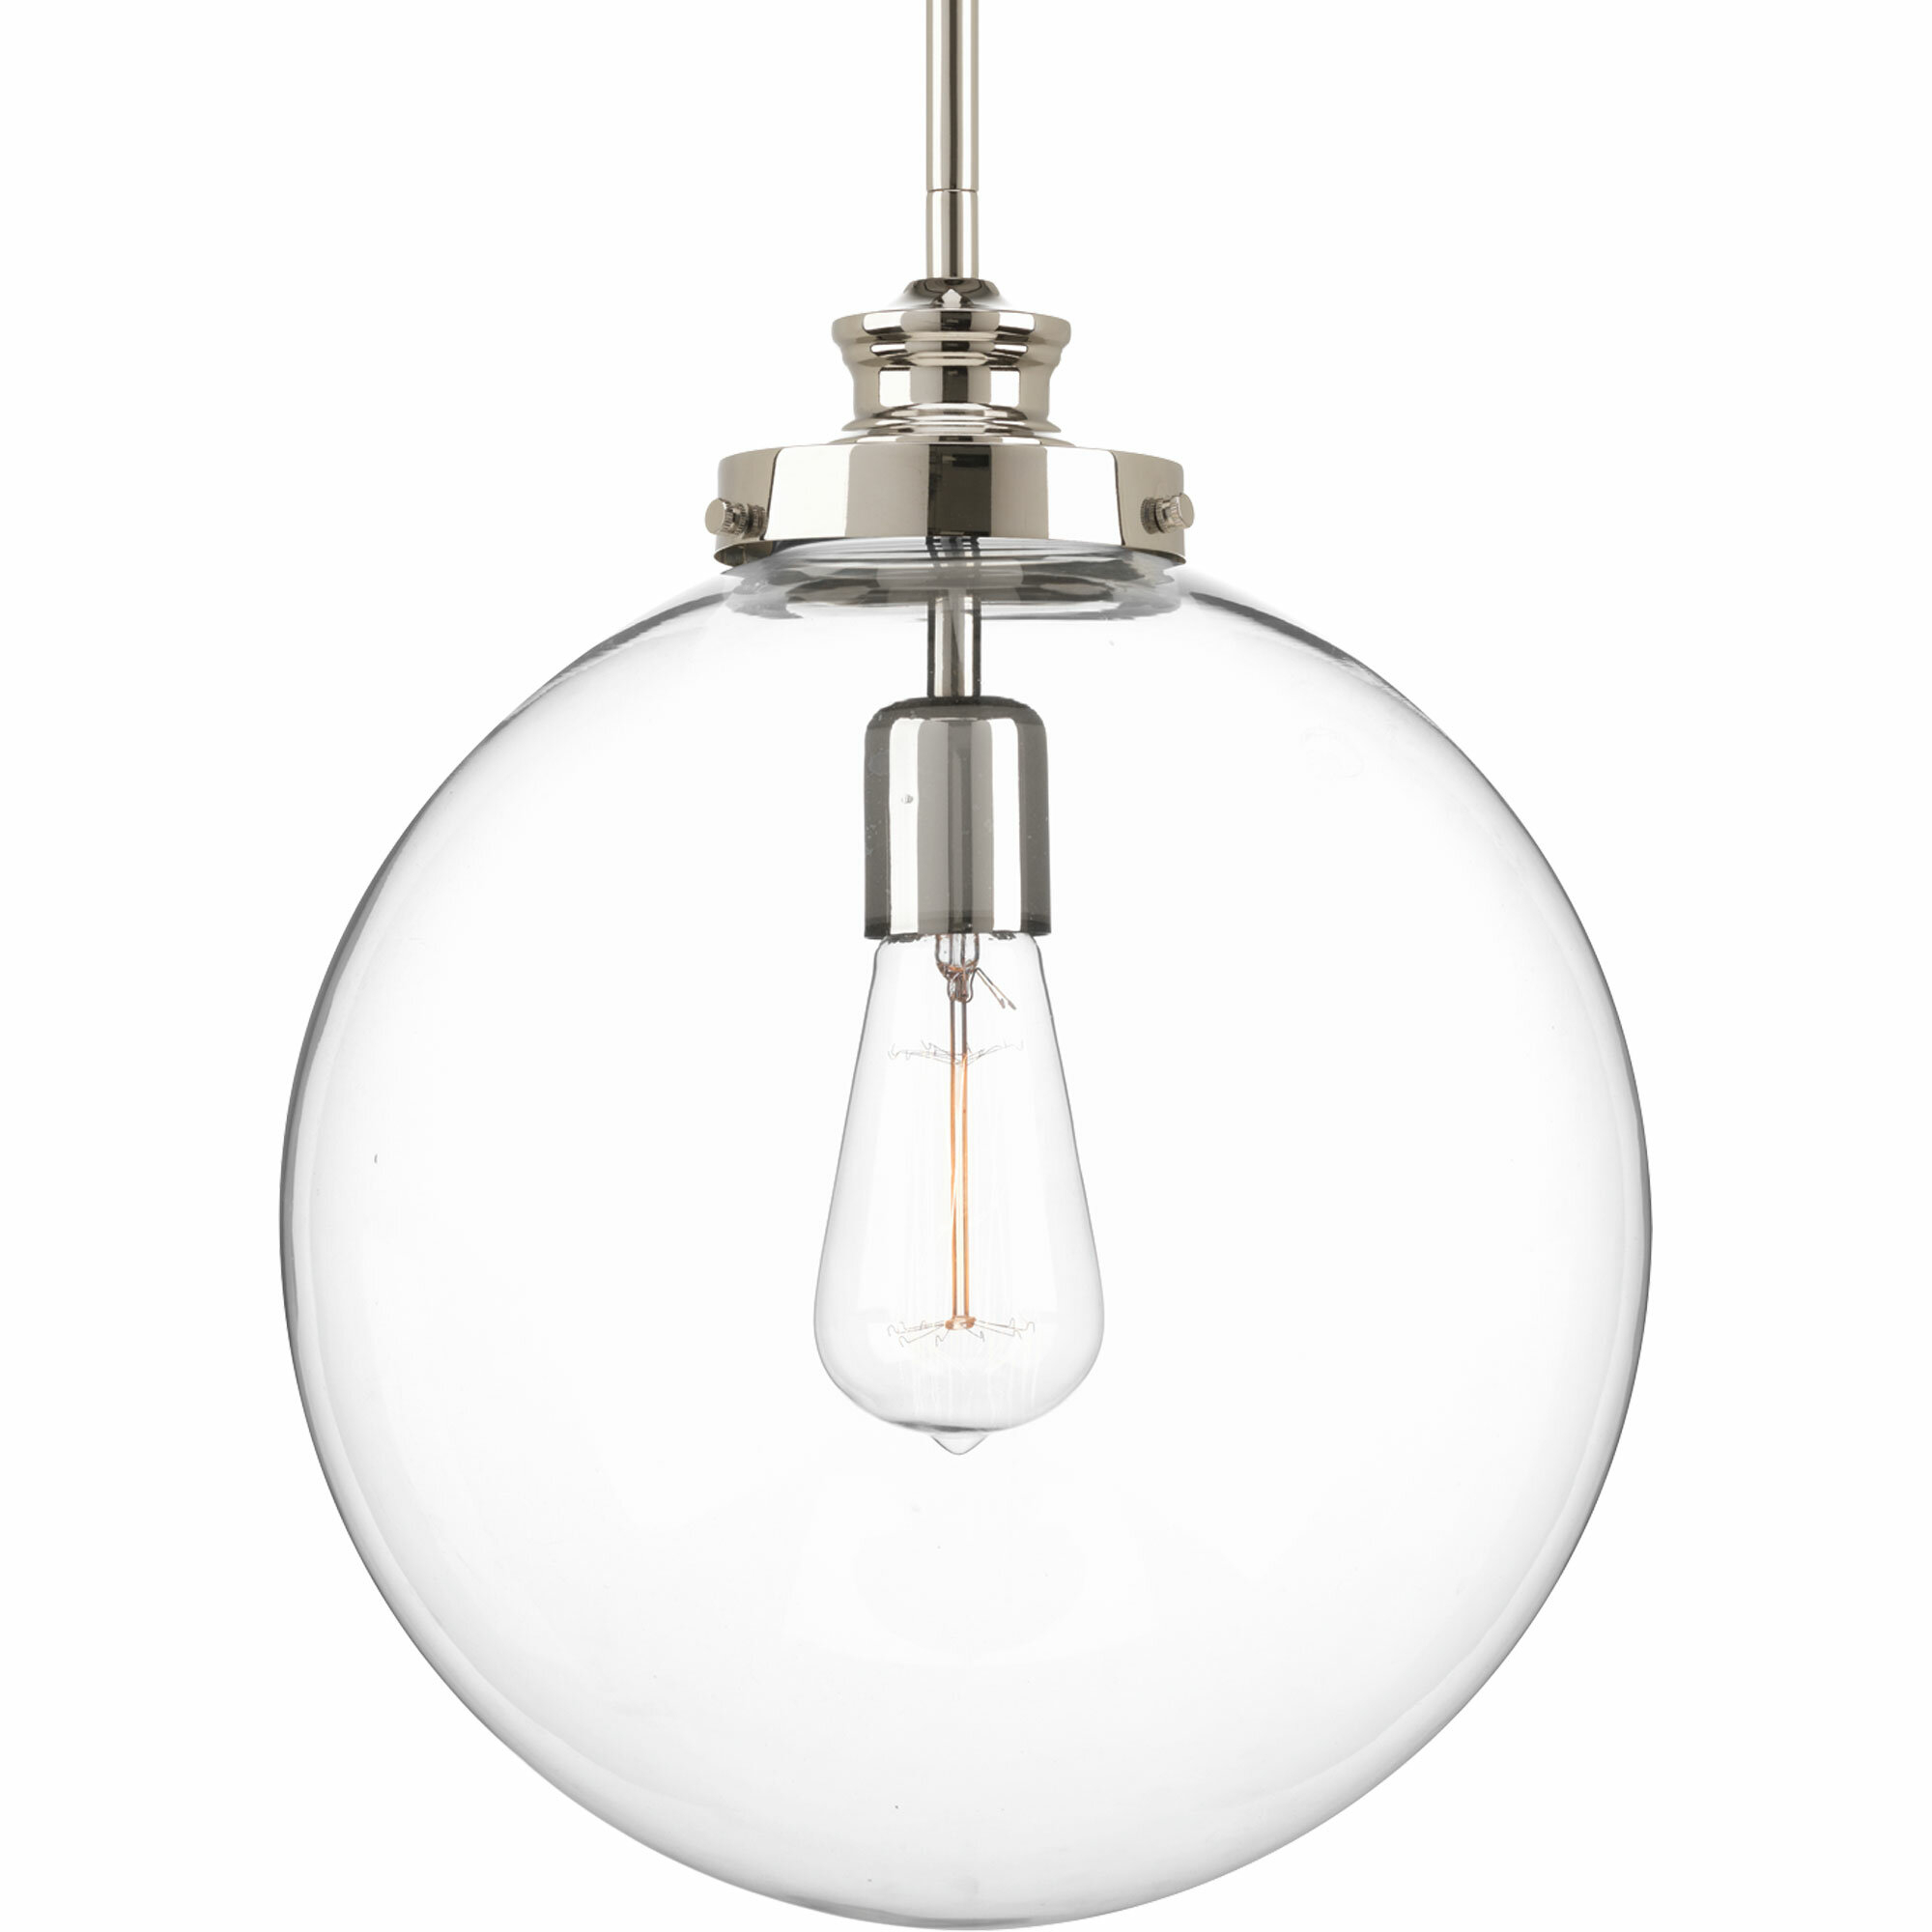 Cayden 1 Light Single Globe Pendant Throughout Betsy 1 Light Single Globe Pendants (View 14 of 30)